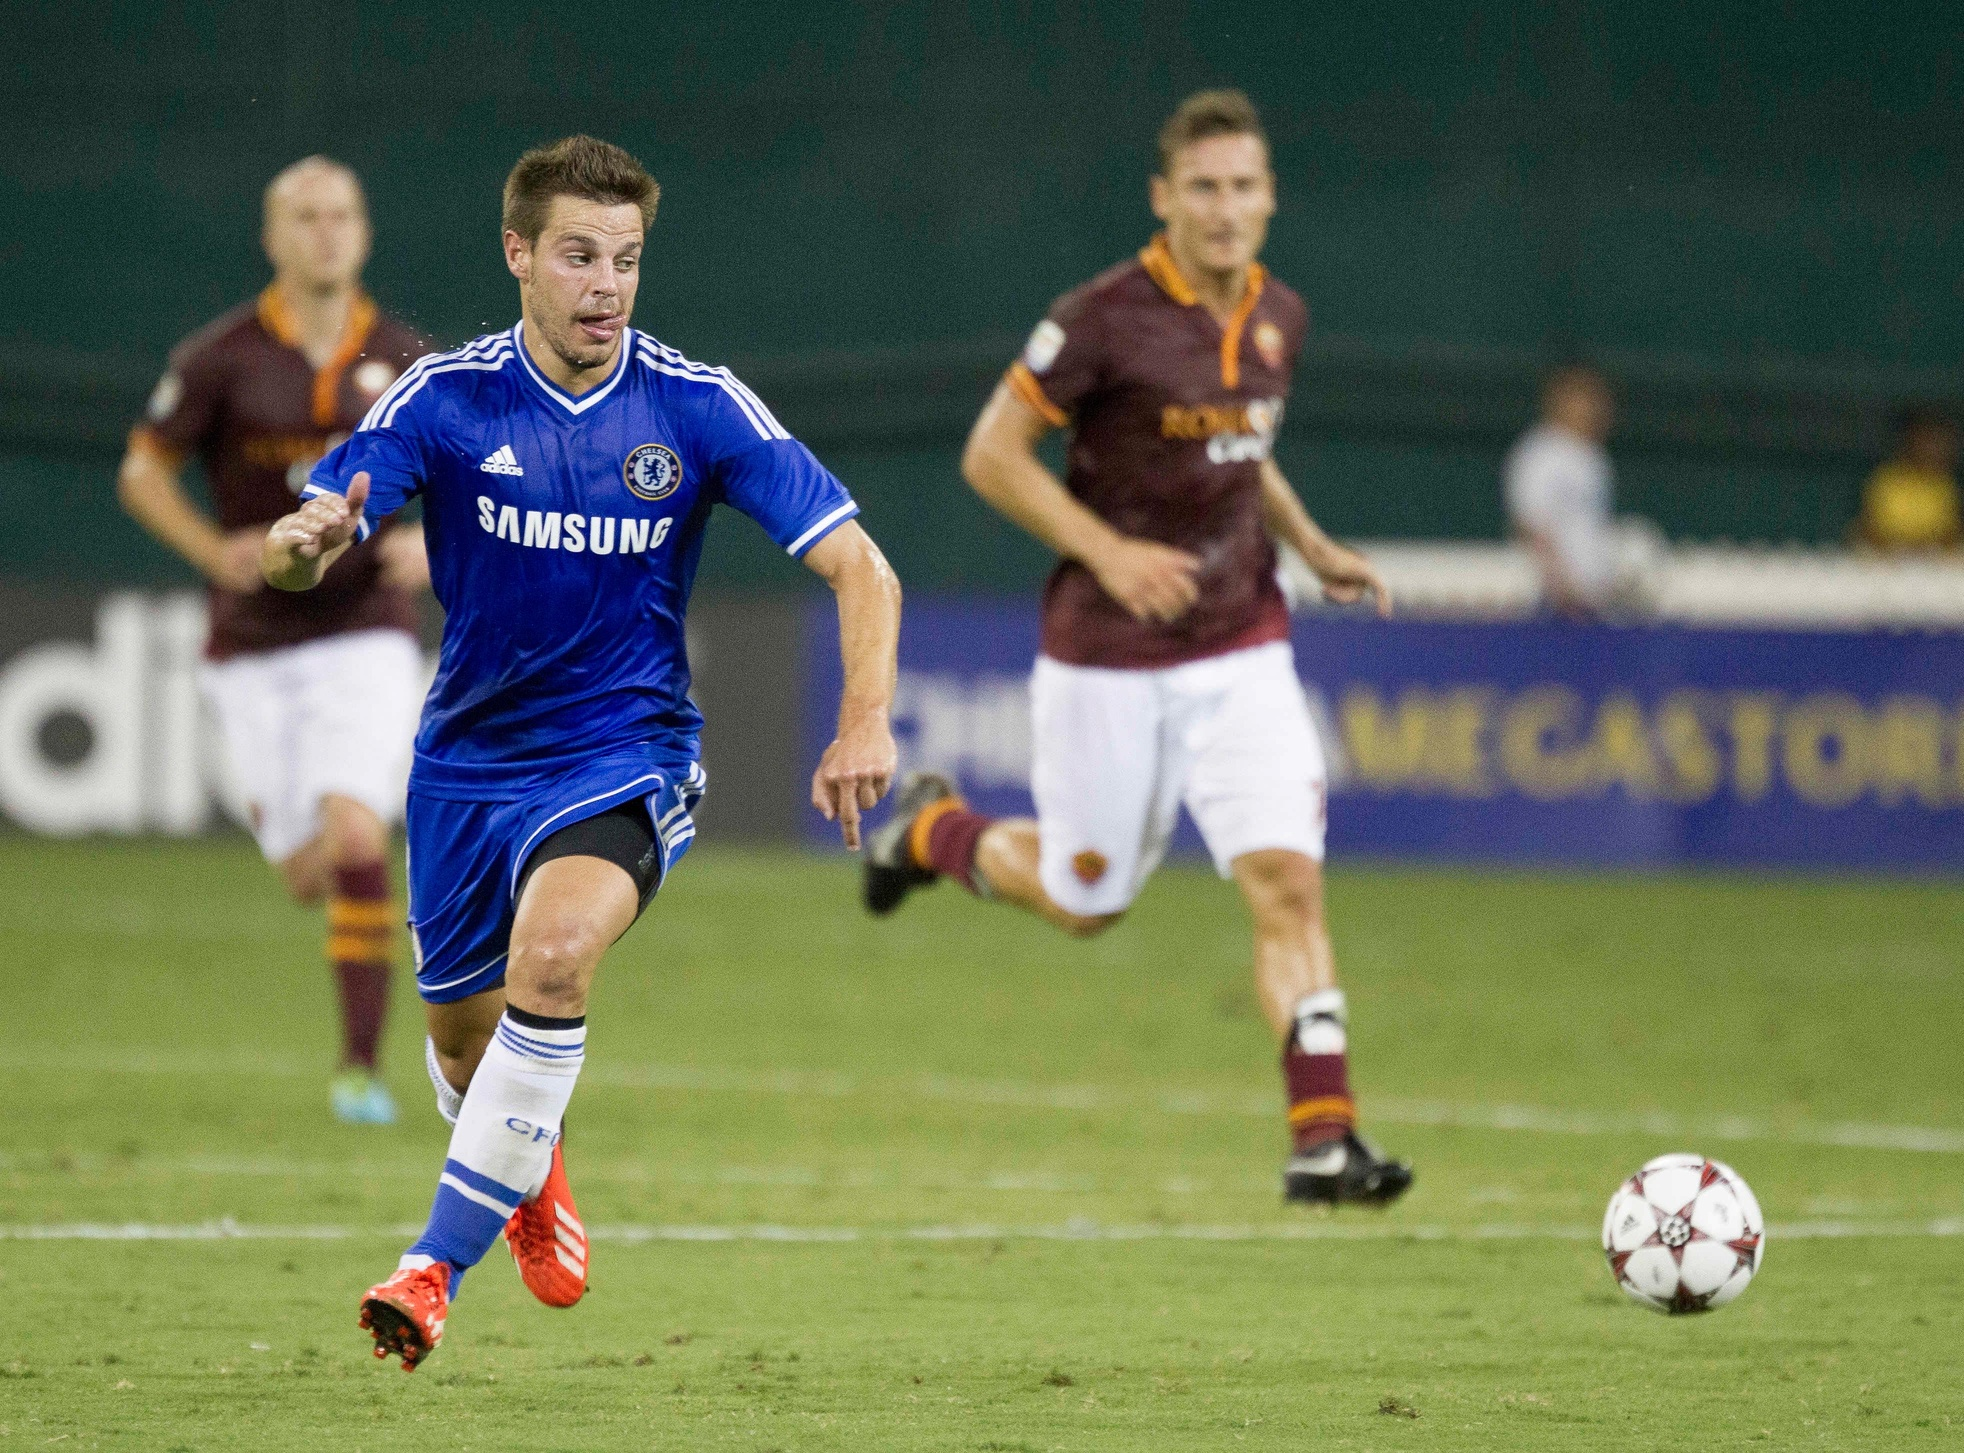 Azpilicueta is Best Premier League Defender Says Gary Neville and Jamie Carragher